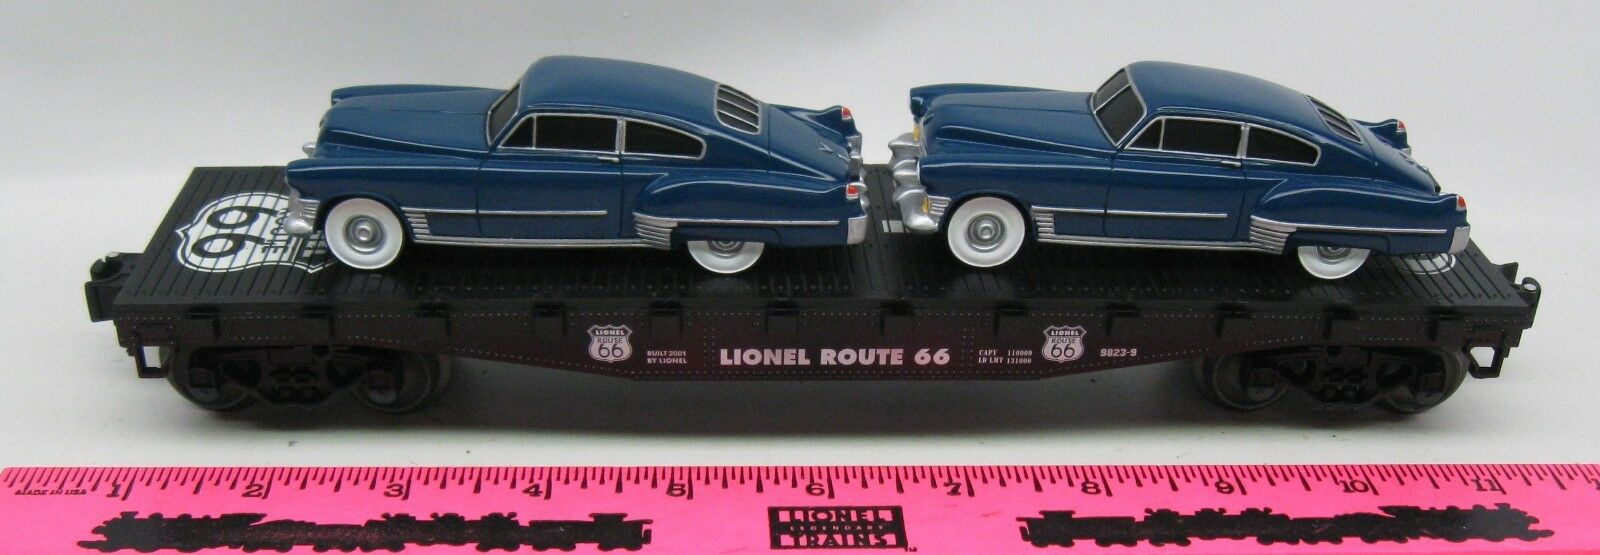 Lionel - 17560 route 66 flachwaggon